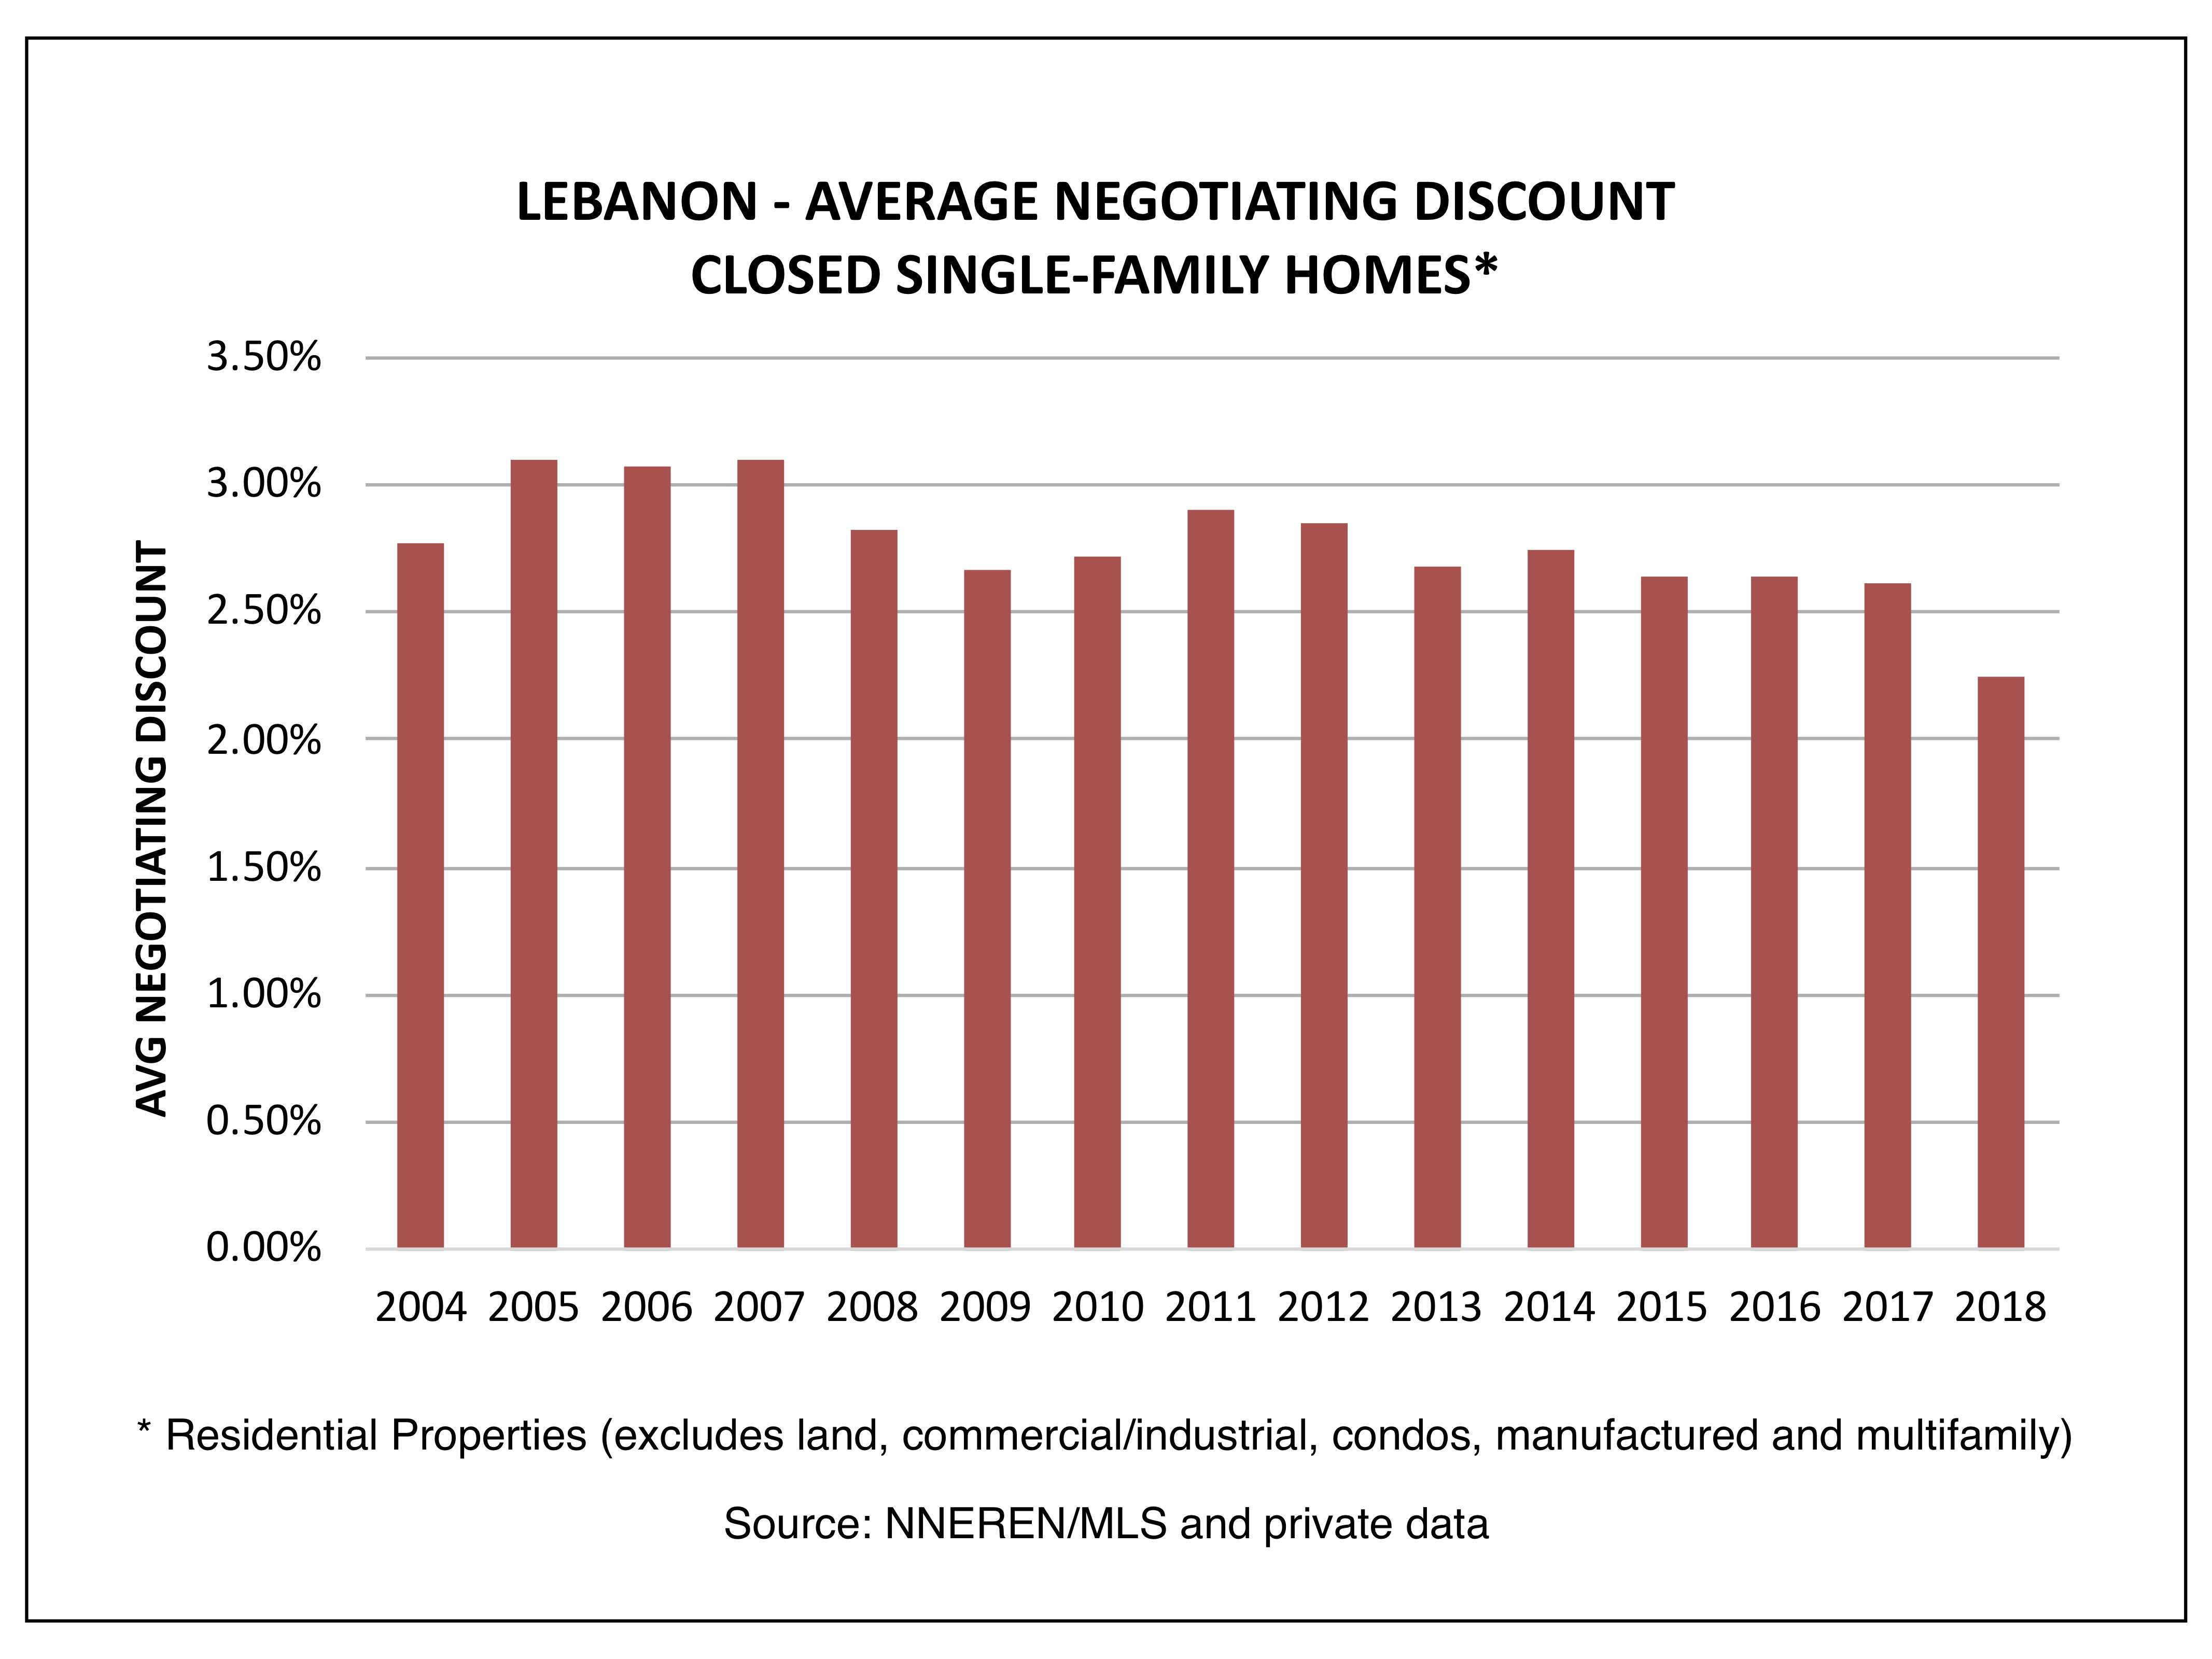 Lebanon - Average Negotiating Discount, Closed Homes